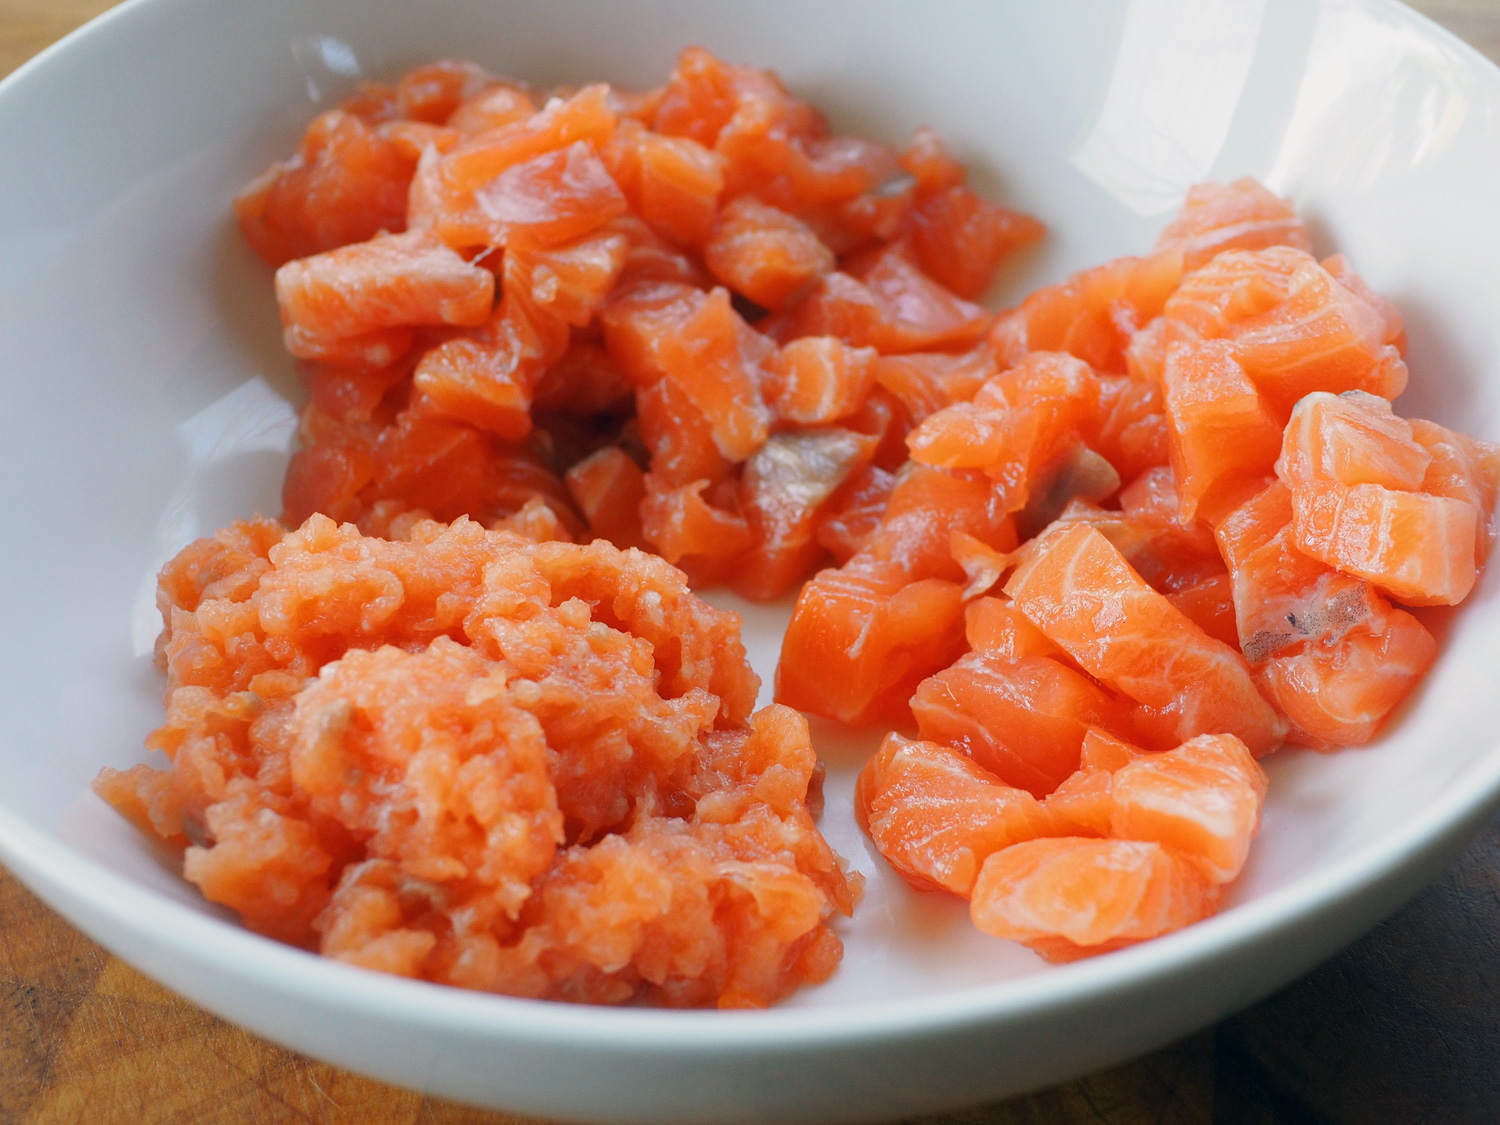 Salmon prepped in 3 sizes: Big cubes, smaller cubes and a paste.